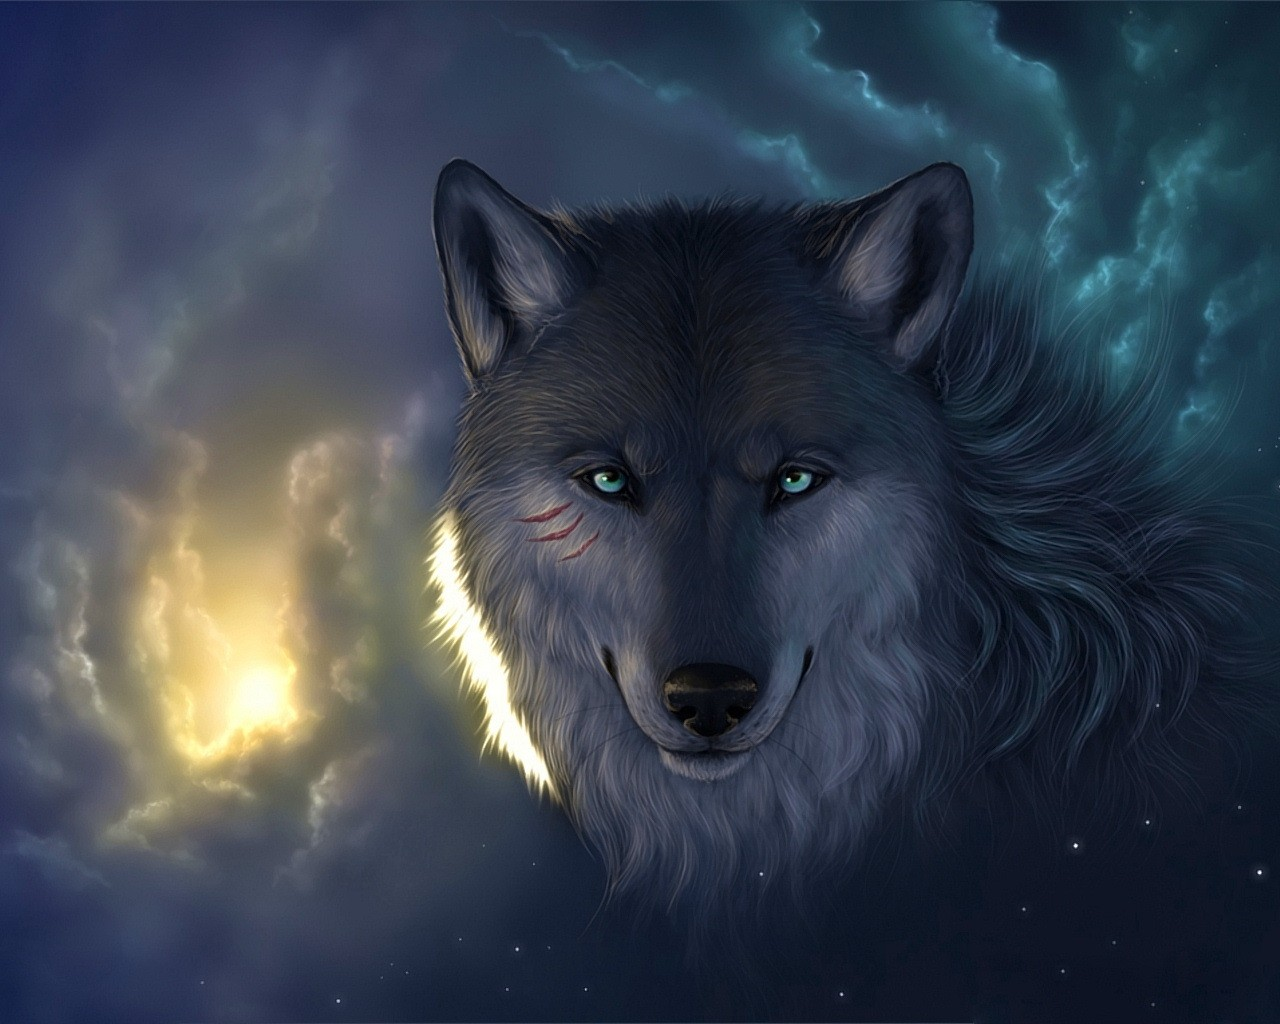 Wallpaper wolf clouds cuts eyes muzzle light stars wallpapers 1280x1024